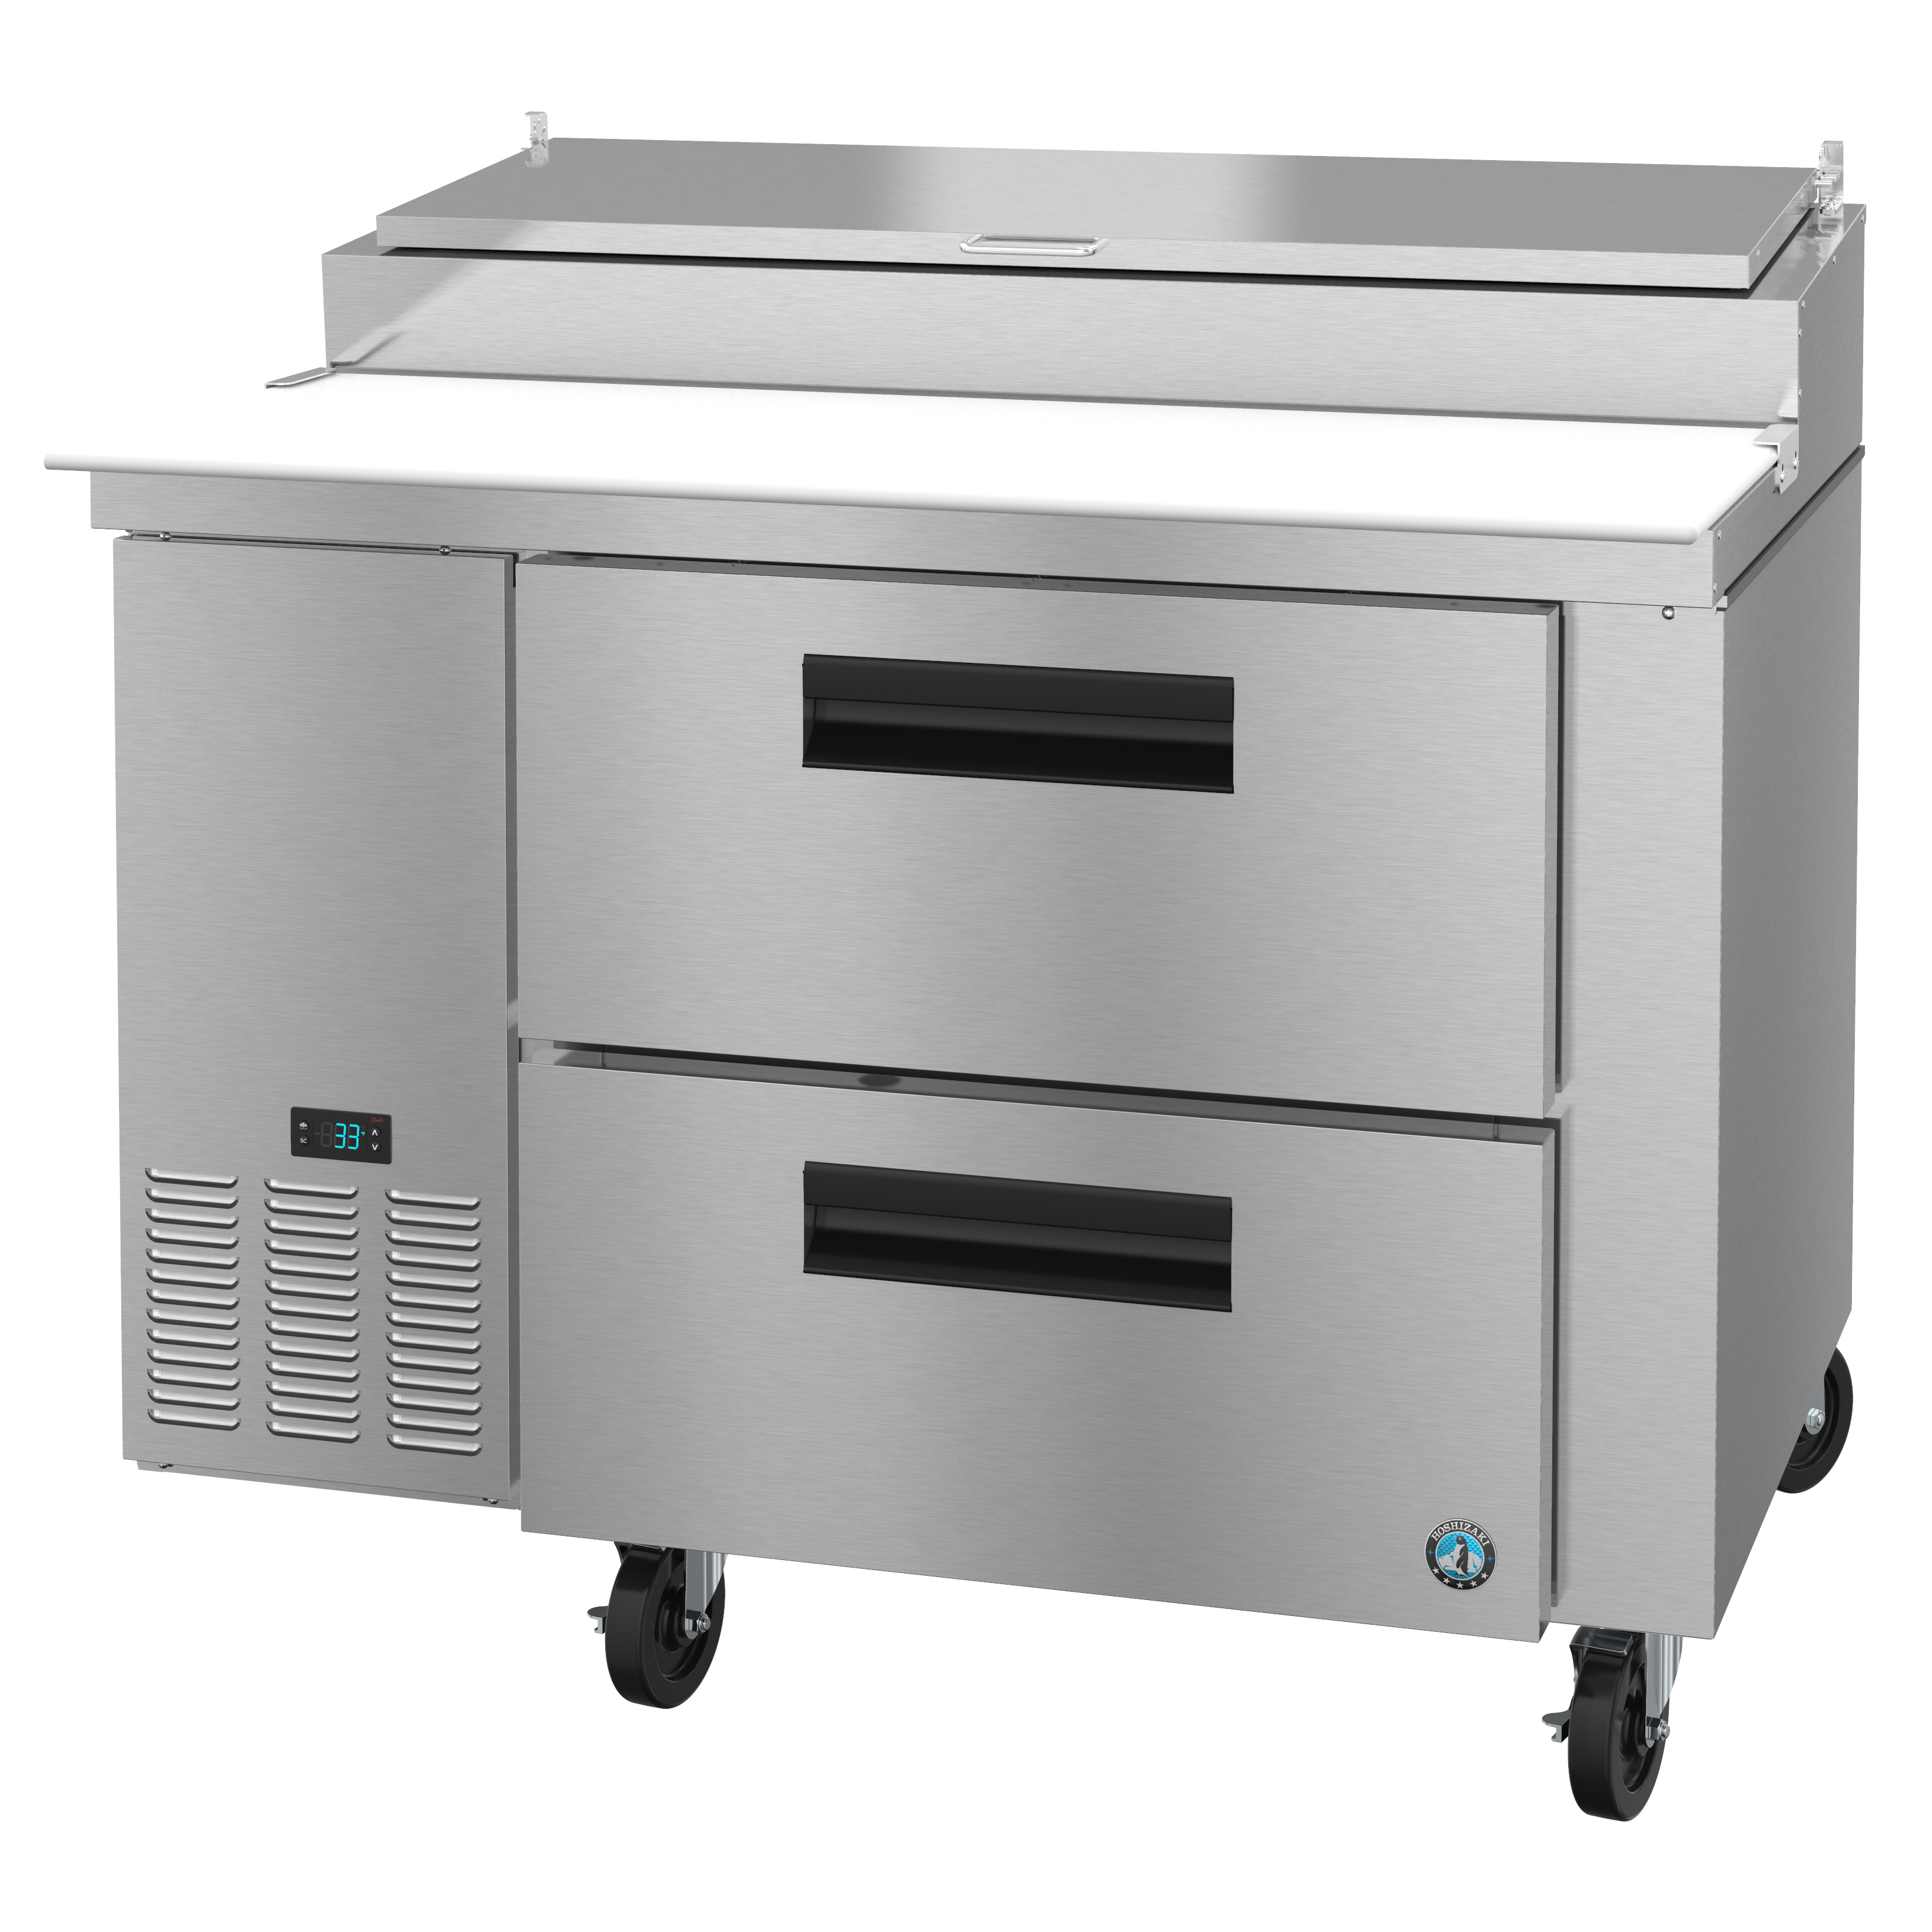 Hoshizaki PR46A-D2 refrigerated counter, pizza prep table